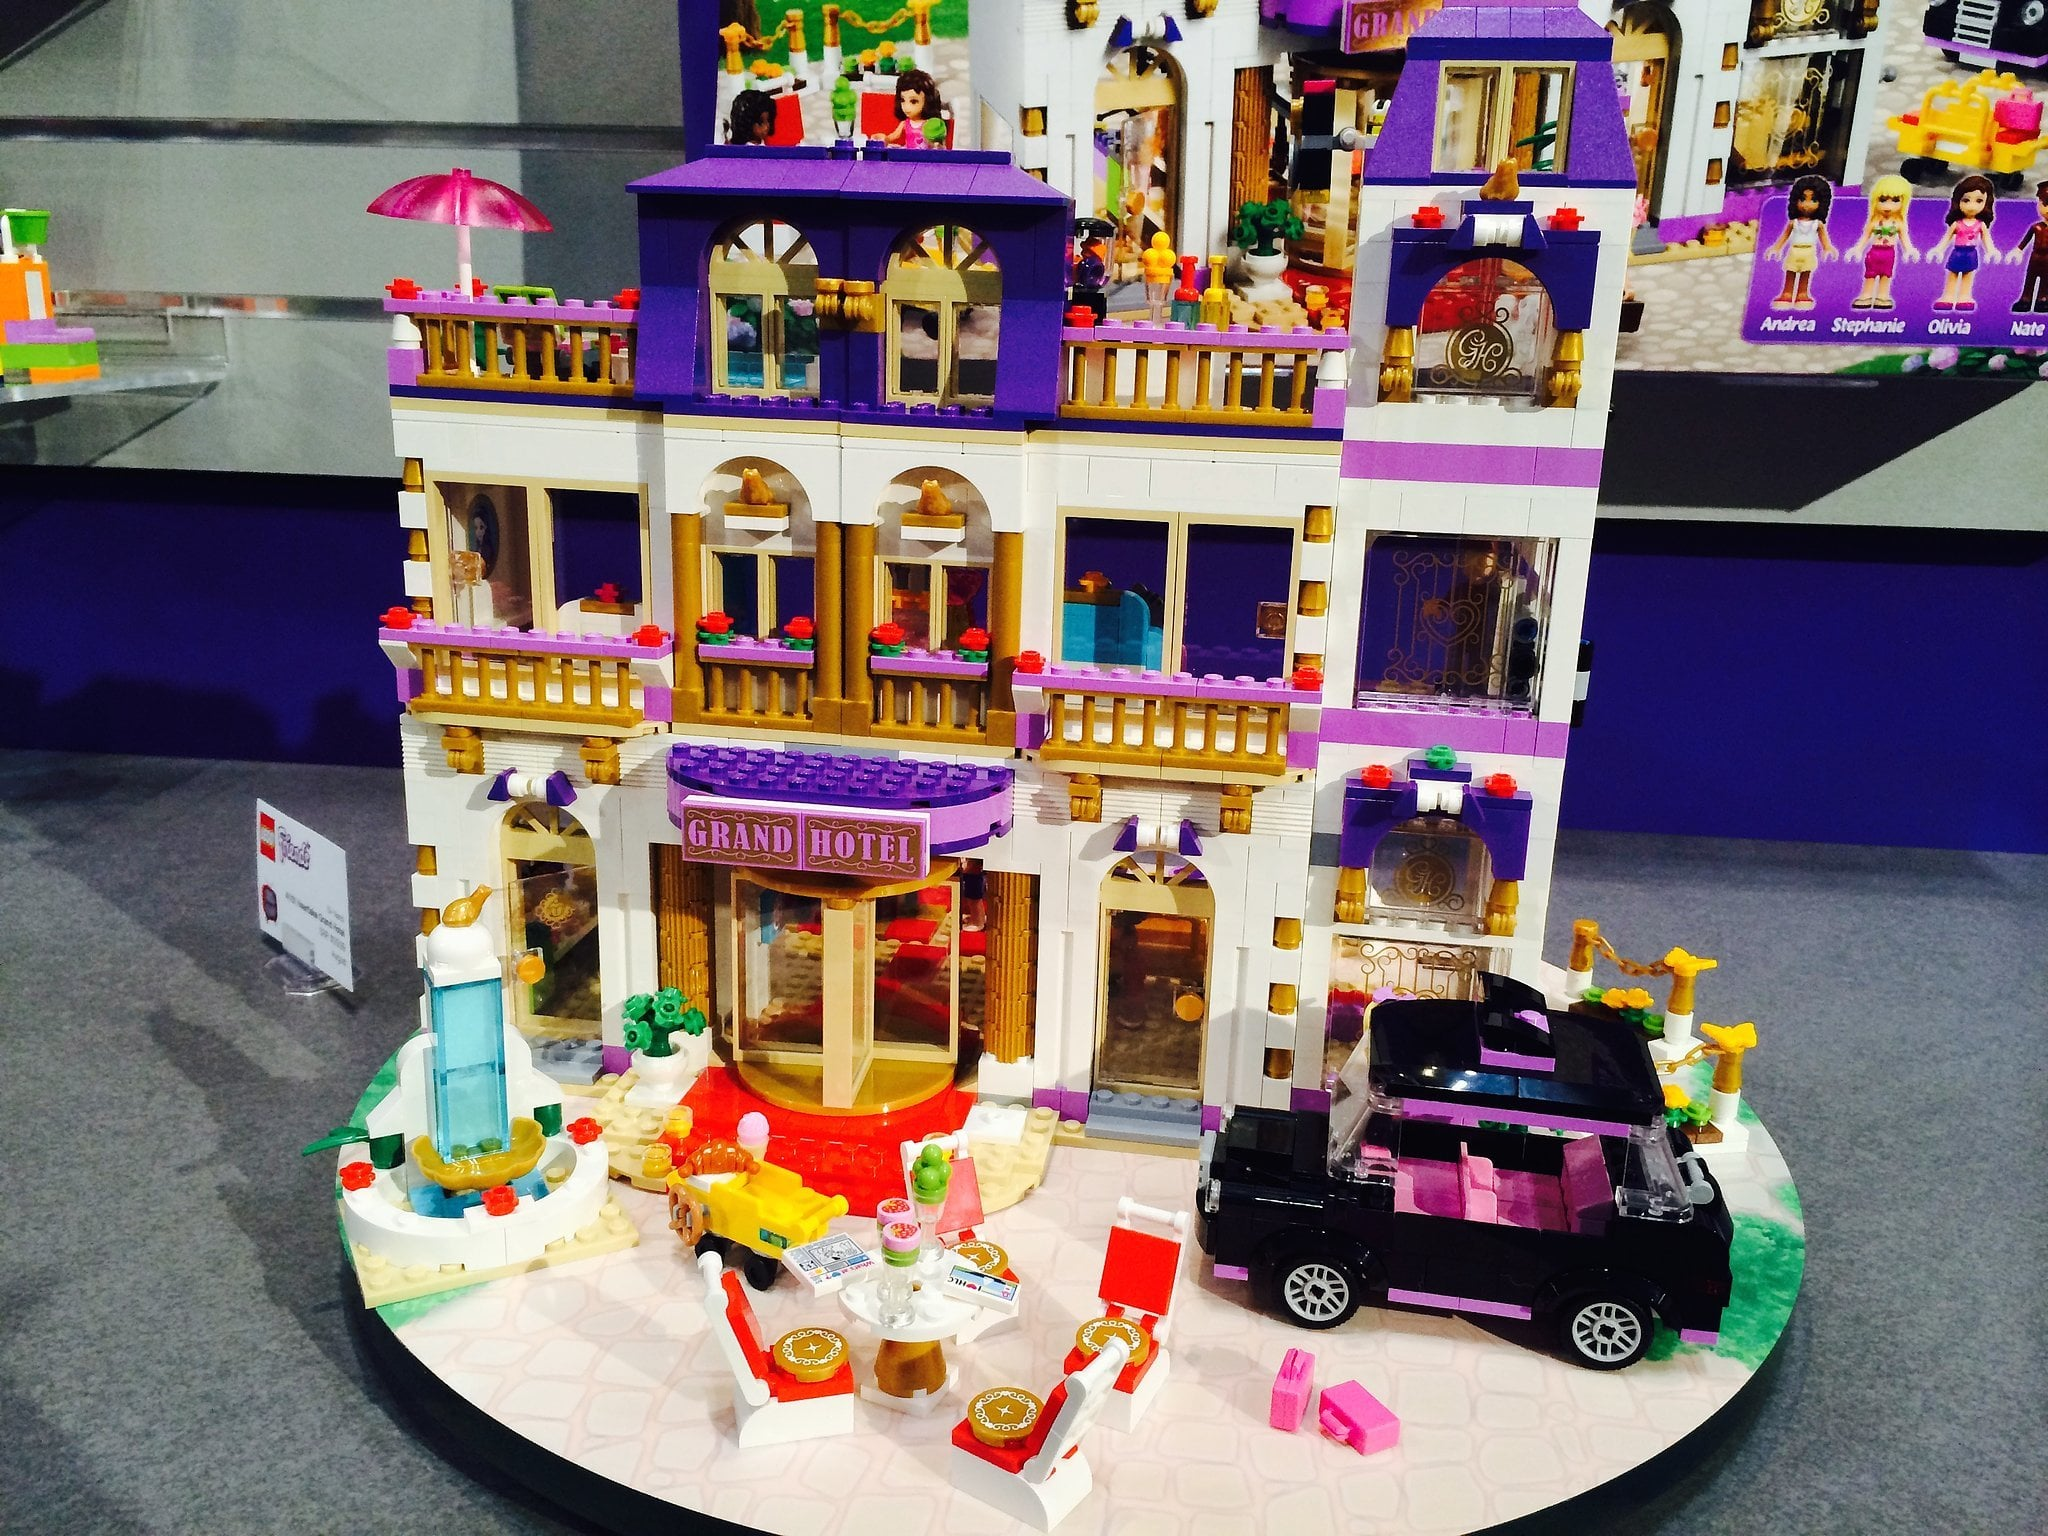 Check out information on The LEGO Friends Heartlake Grand Hotel Building Set, including links to instructional videos, building instructions, product and customer reviews & how and where to go to buy this popular Lego Friends Building Set at Amazon.